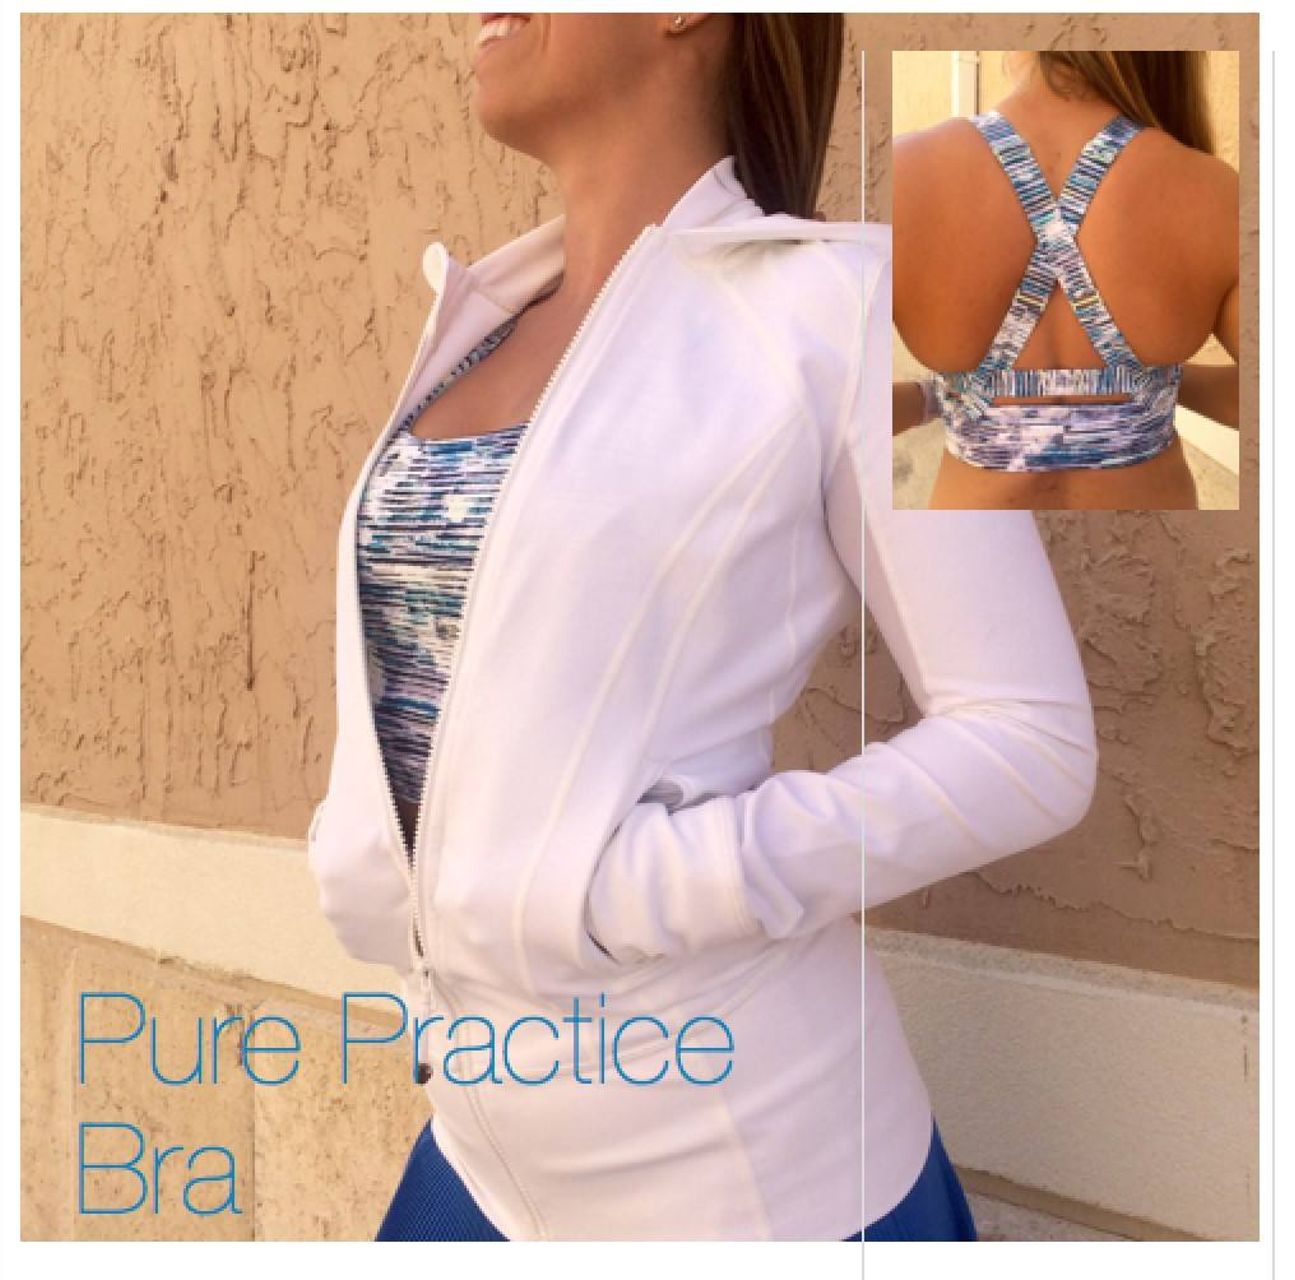 Lululemon Pure Practice Bra - Blurry Belle Multi / Sea Mist